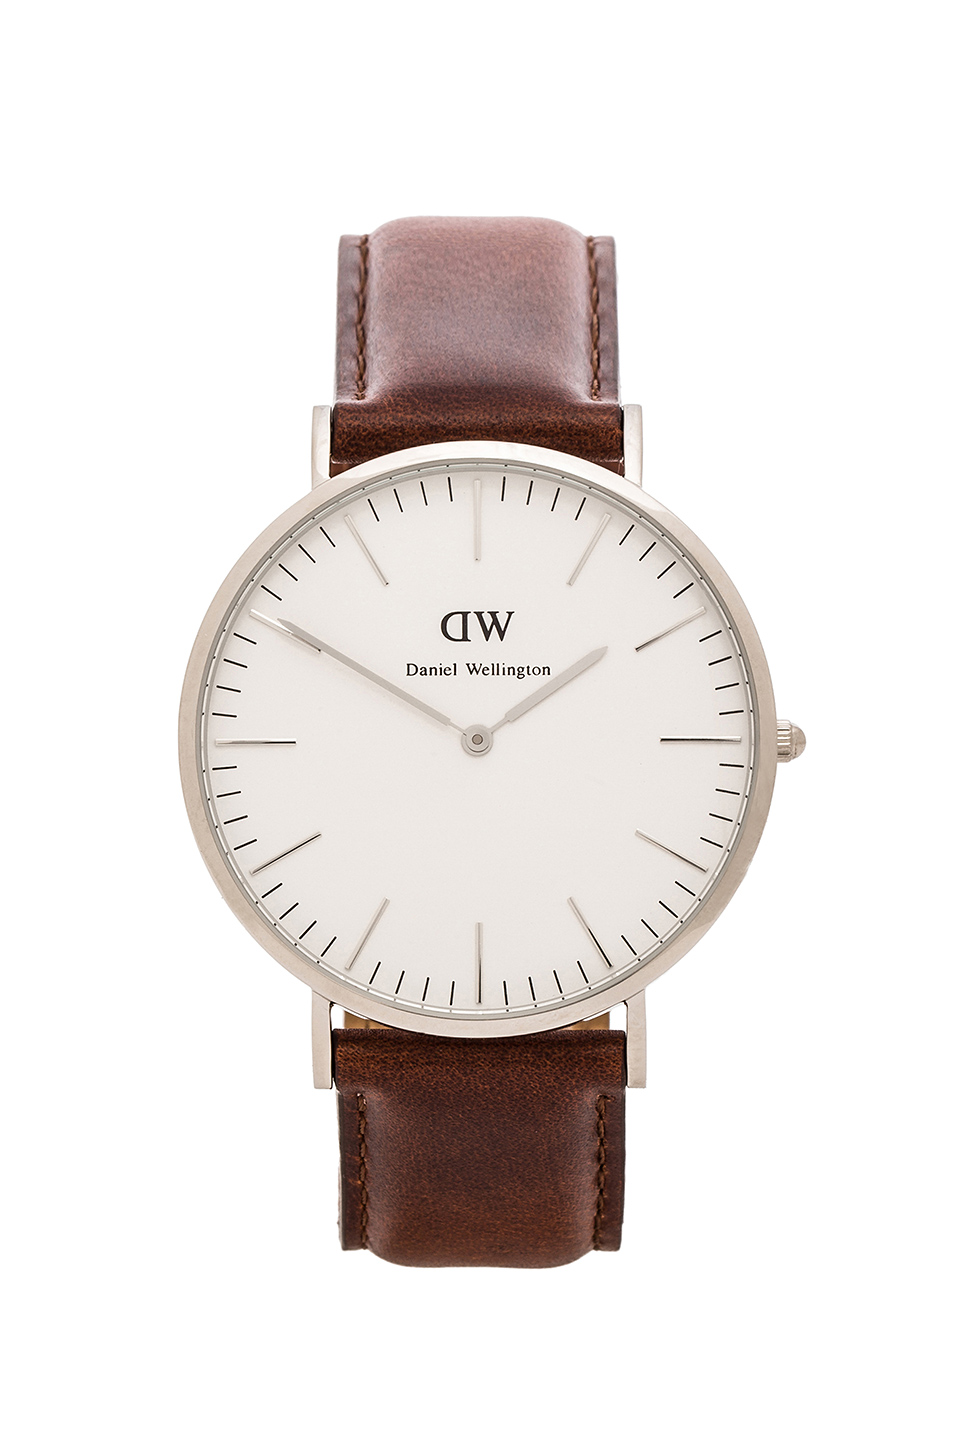 Daniel Wellington St Andrews 40mm in Silver